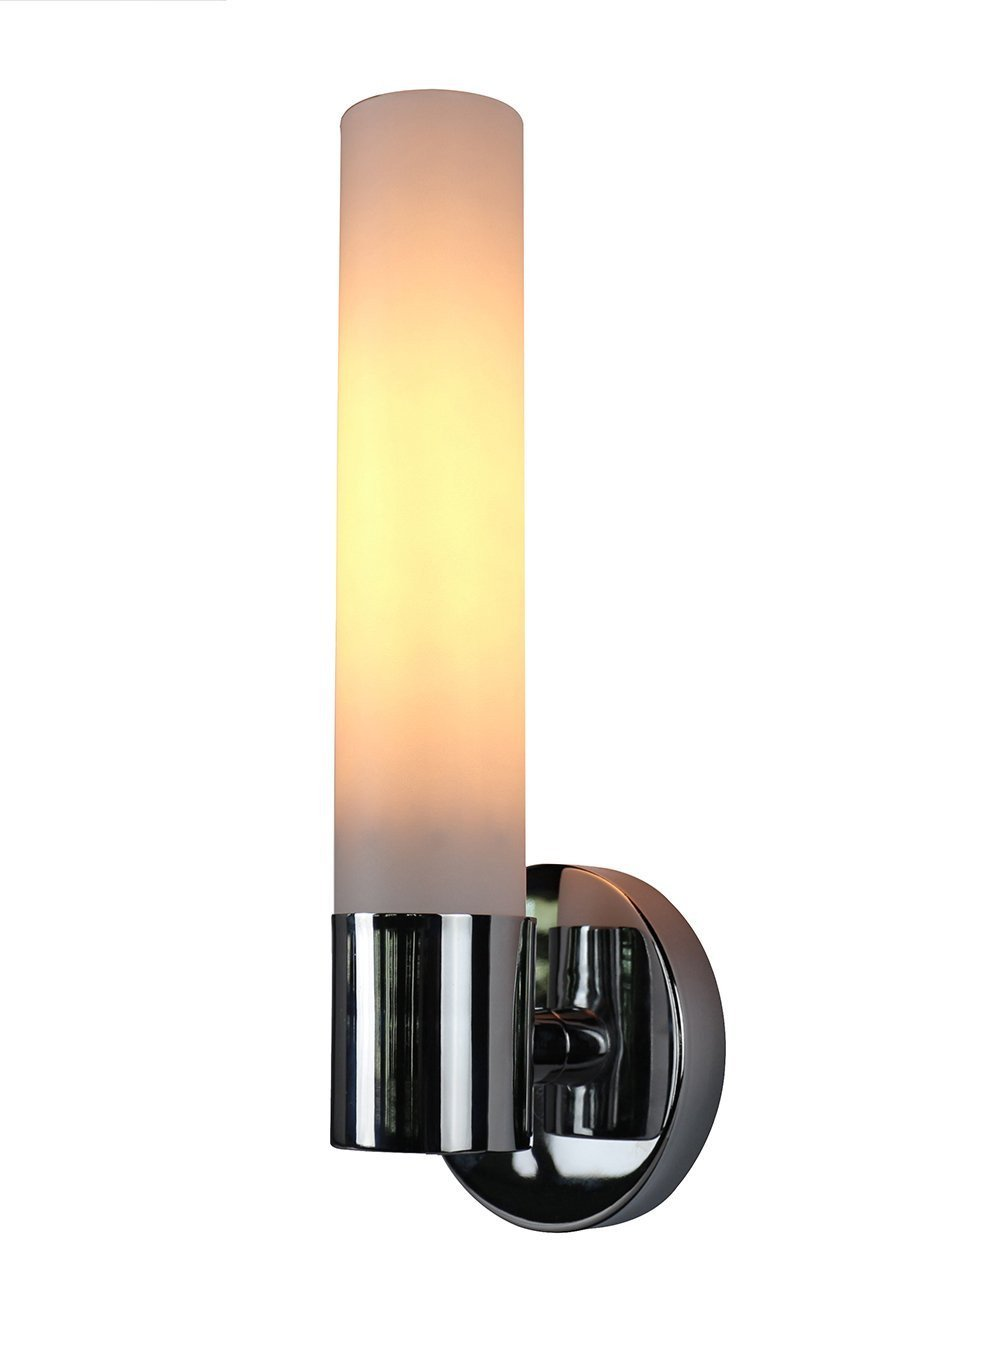 Enzo One-Light Wall Sconce Lamp with Frosted Glass Shade - 2 Finishes, Hardwired